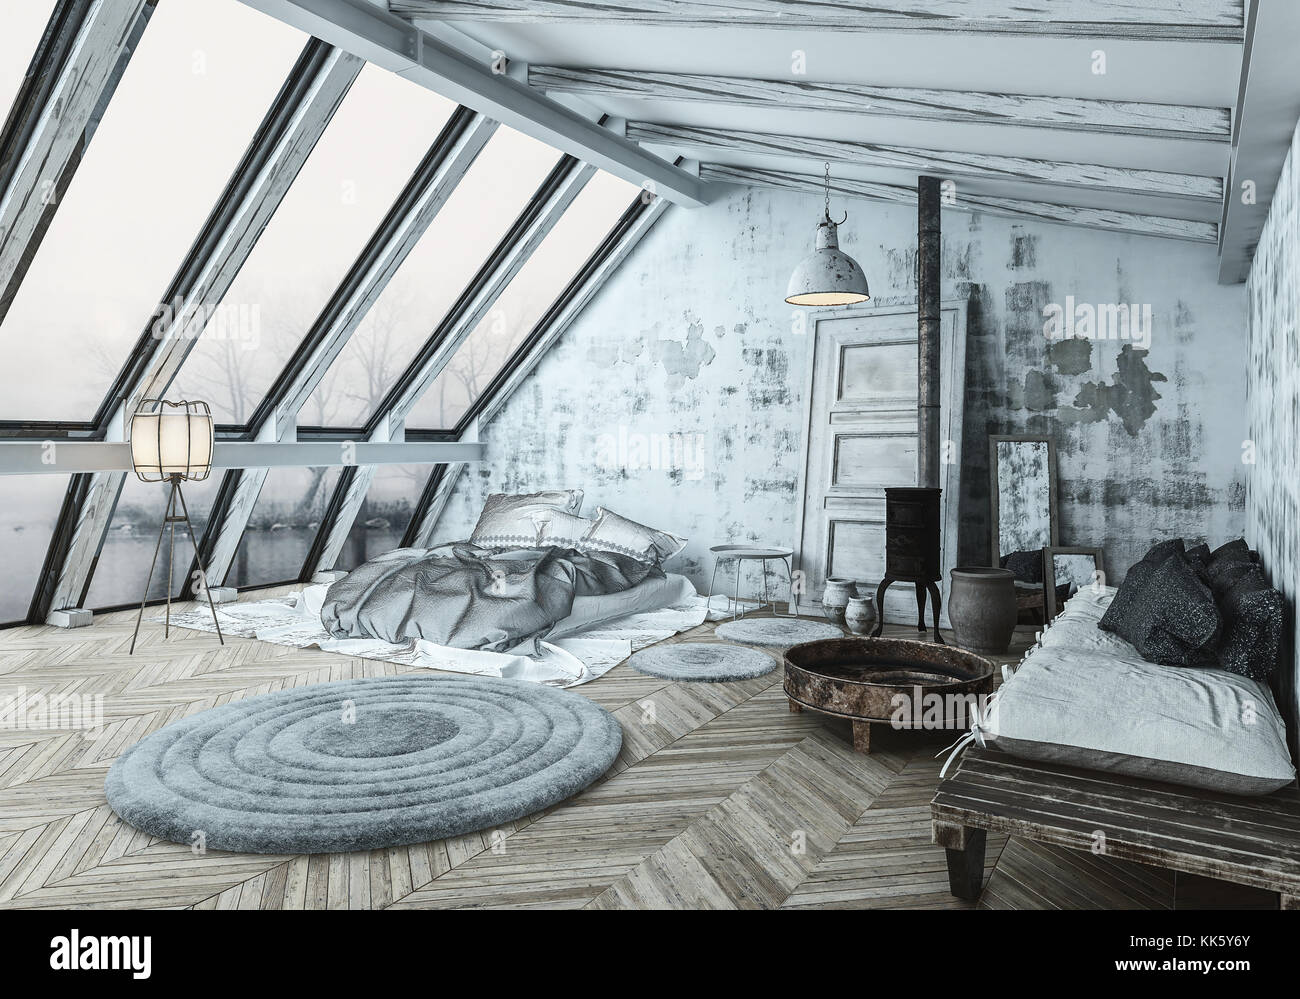 Cozy Scandinavian Style Bedroom With A Wood Burner Stove For Heating Stock Photo Alamy